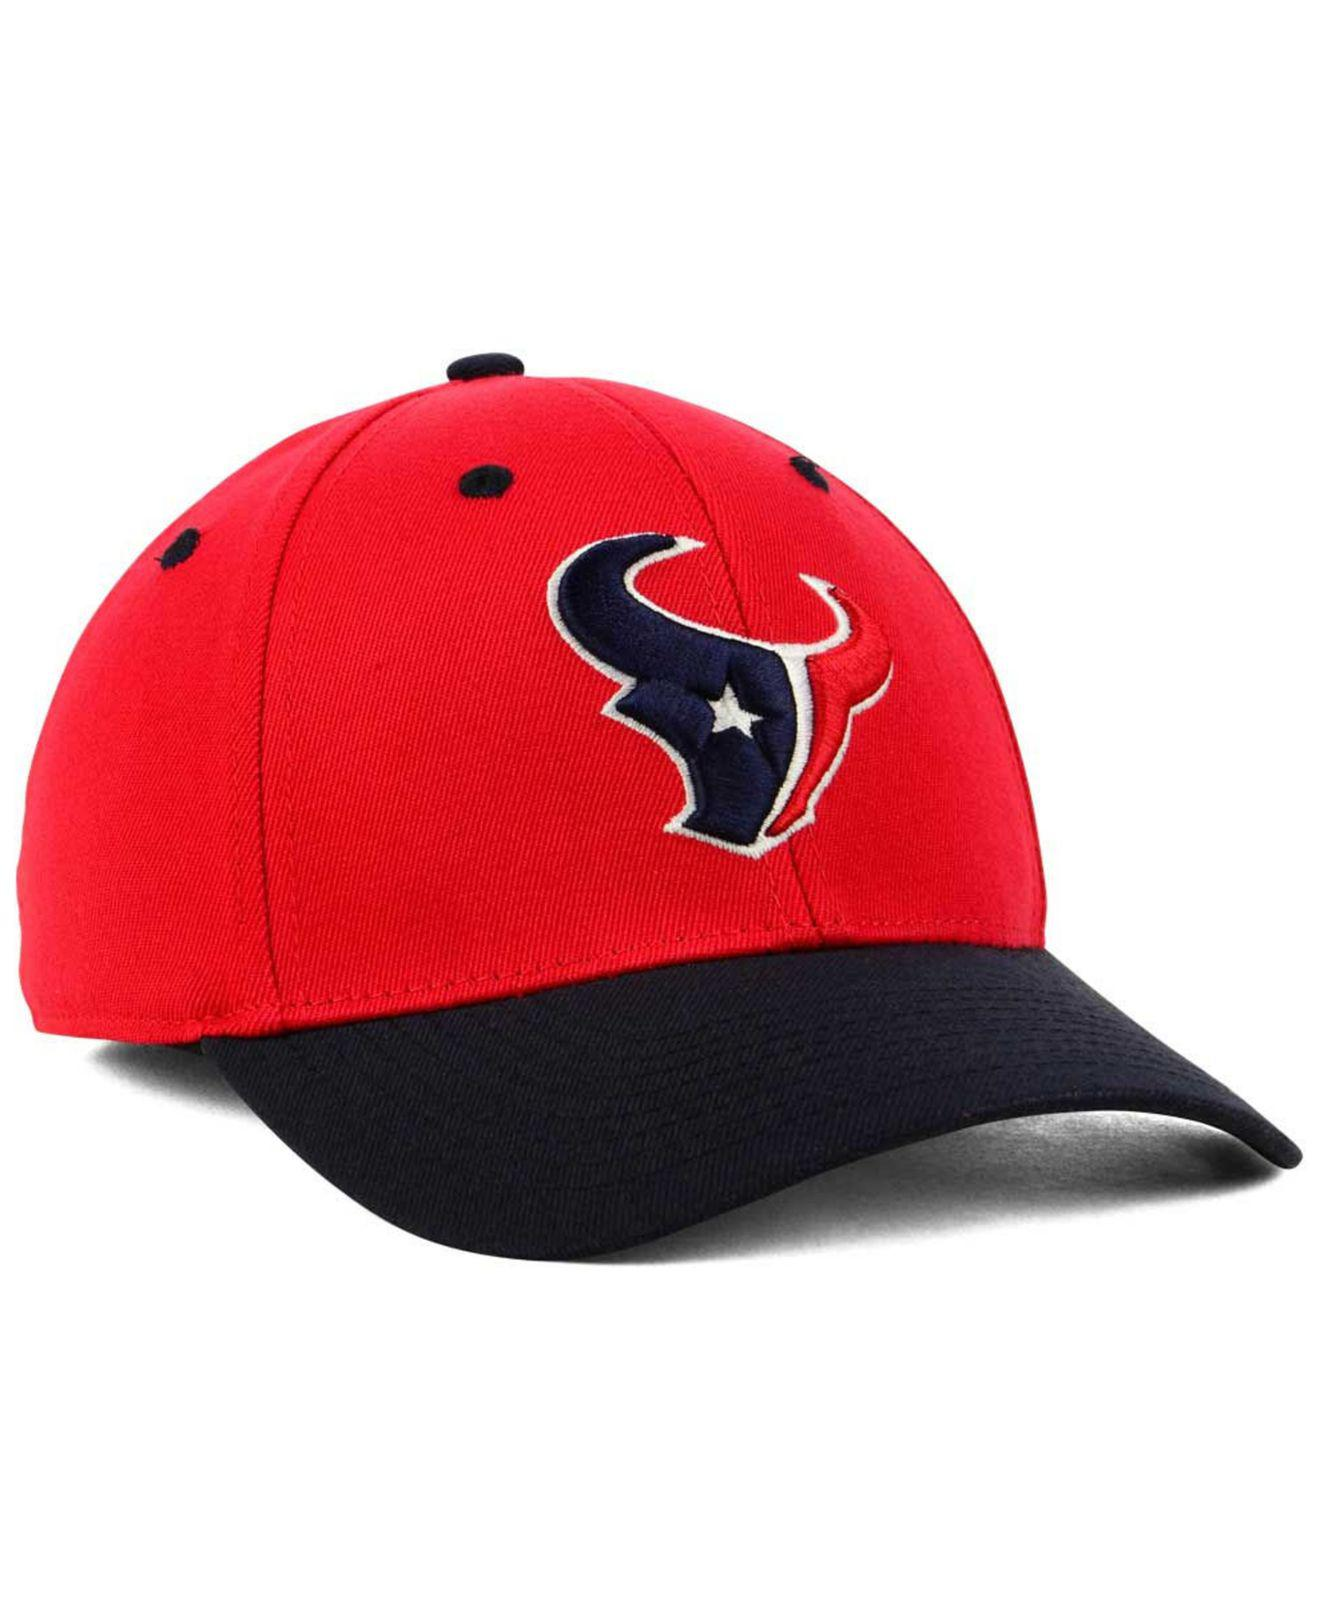 lowest price e9cf7 fae4e Lyst - 47 Brand Kickoff 2-tone Contender Cap in Red for Men